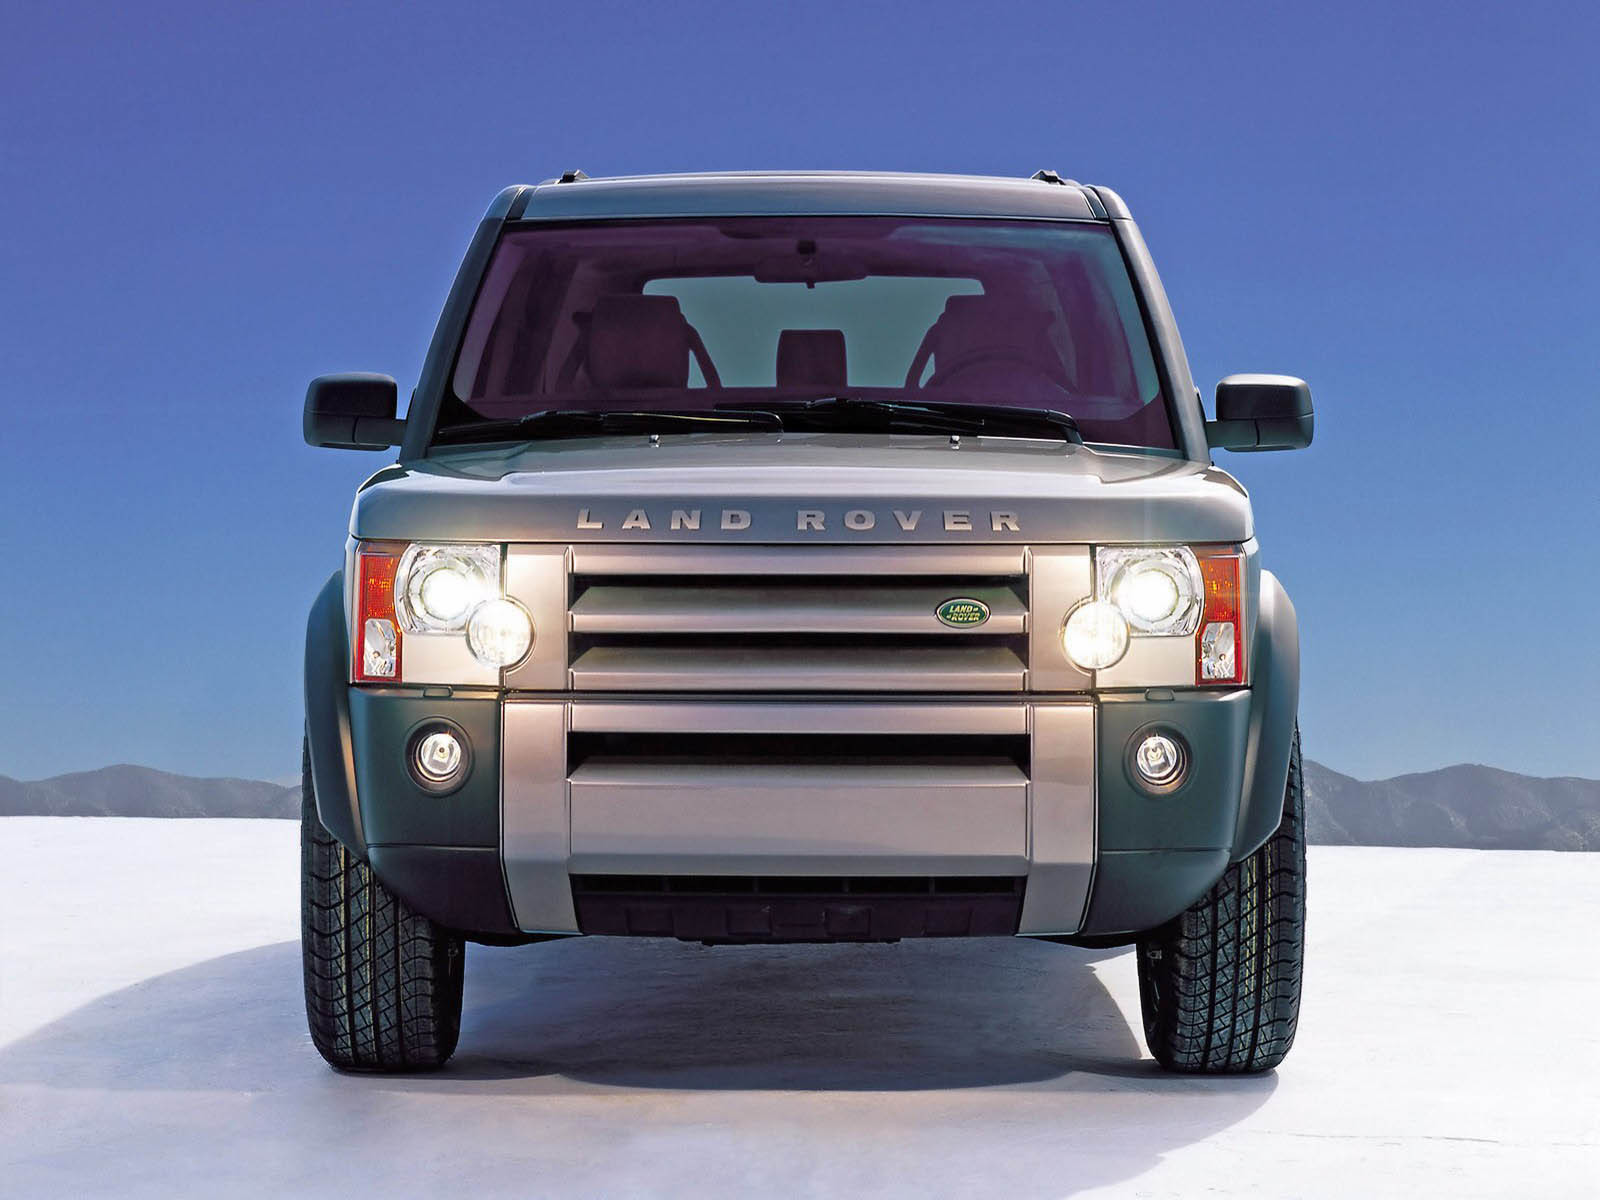 https://pictures.topspeed.com/IMG/jpg/200511/2005-landrover-discovery3.jpg